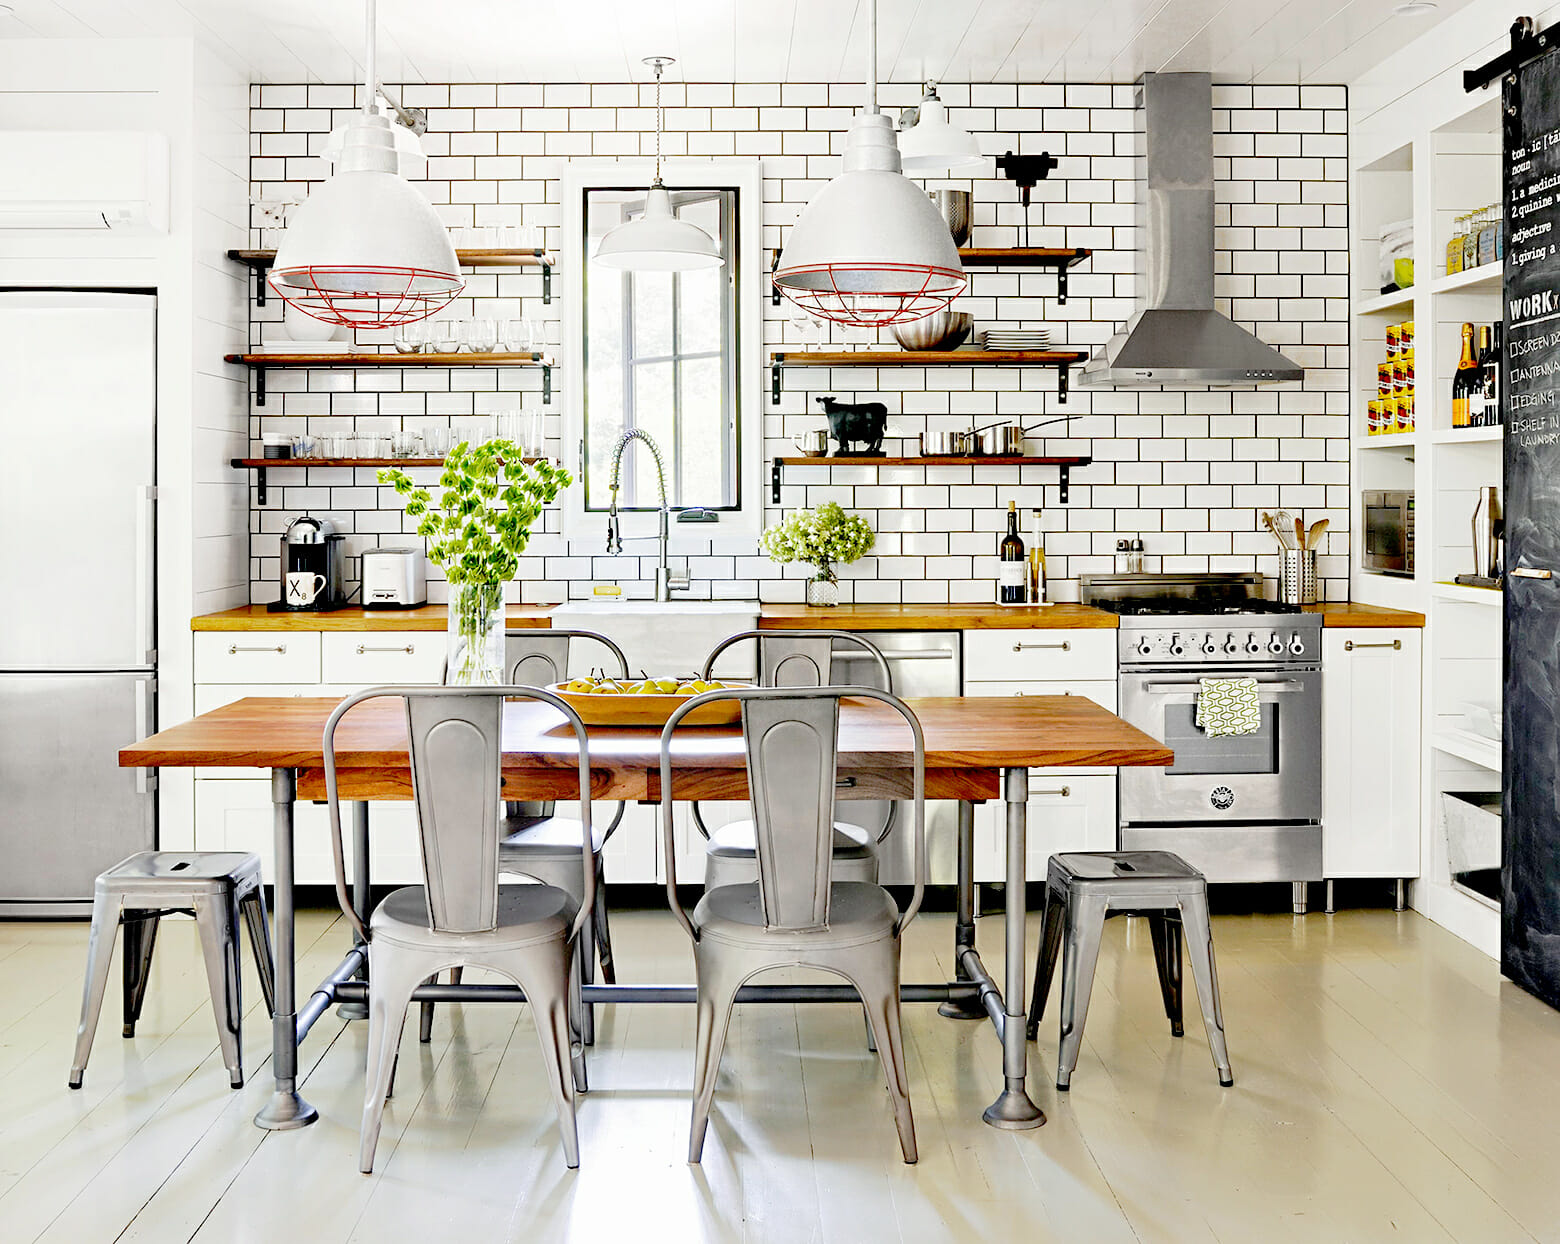 Modern farmhouse decor with green plants in kitchen